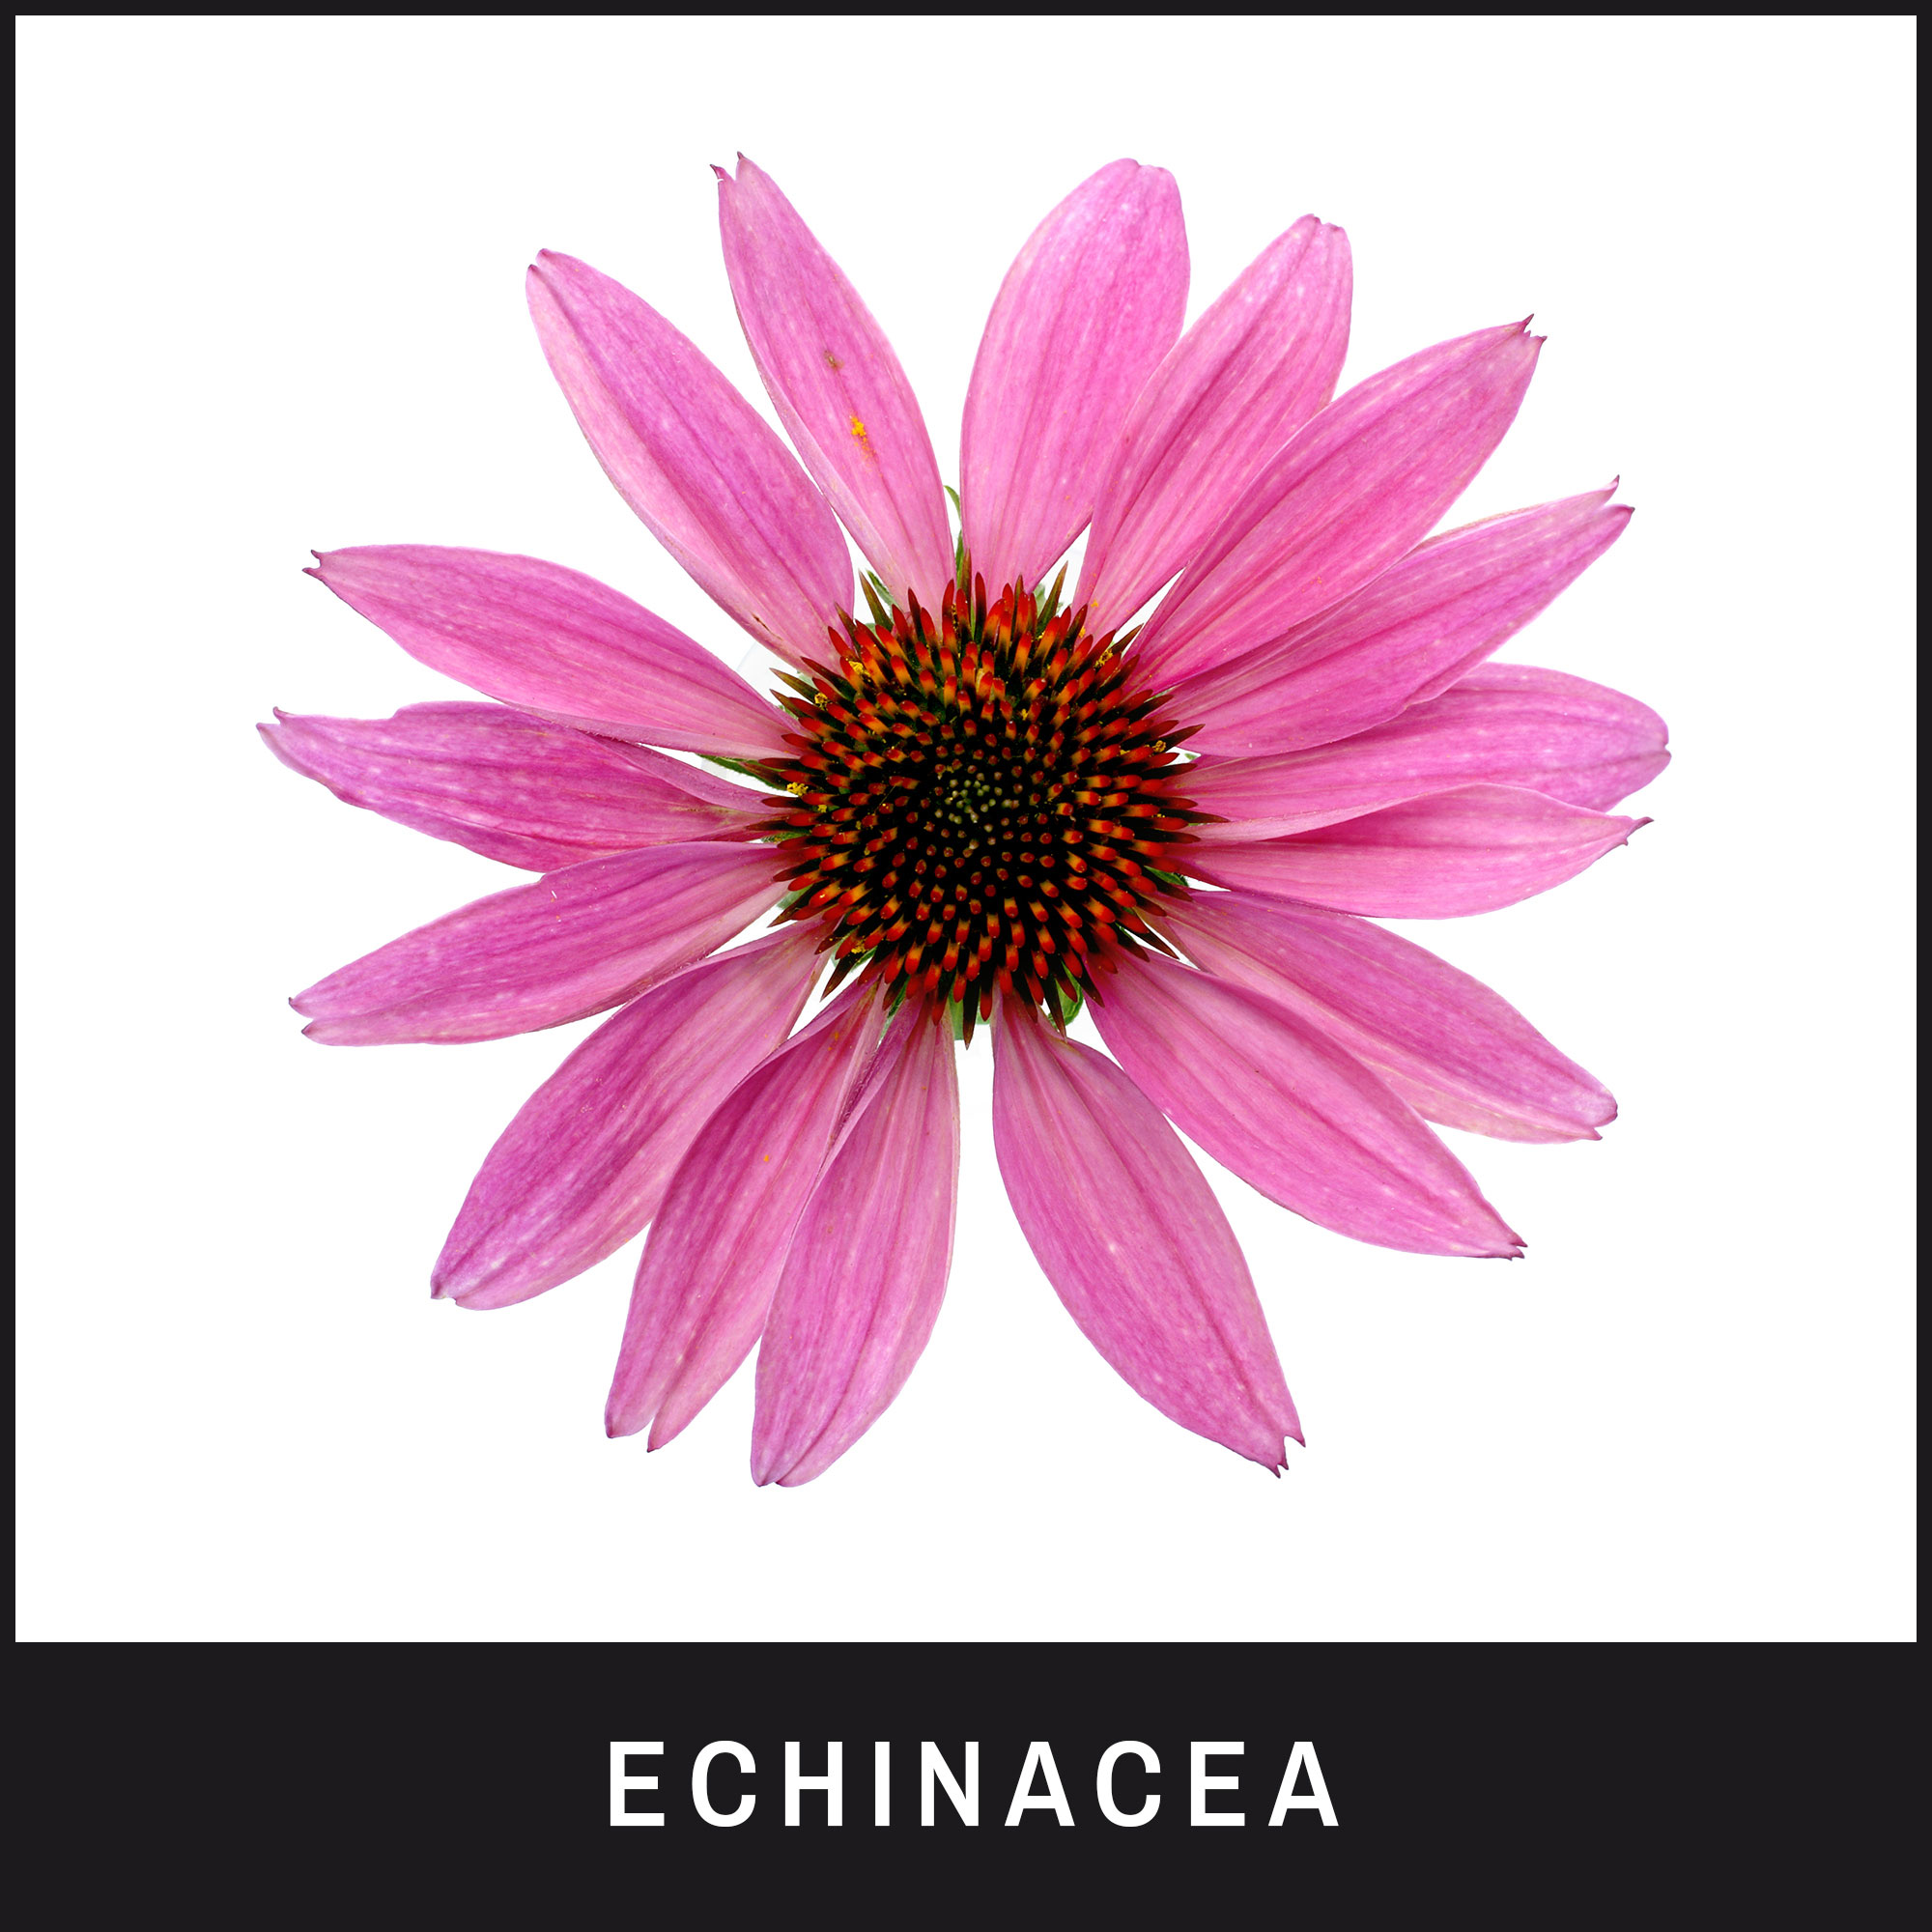 Echinacea helps clean up bacteria infections